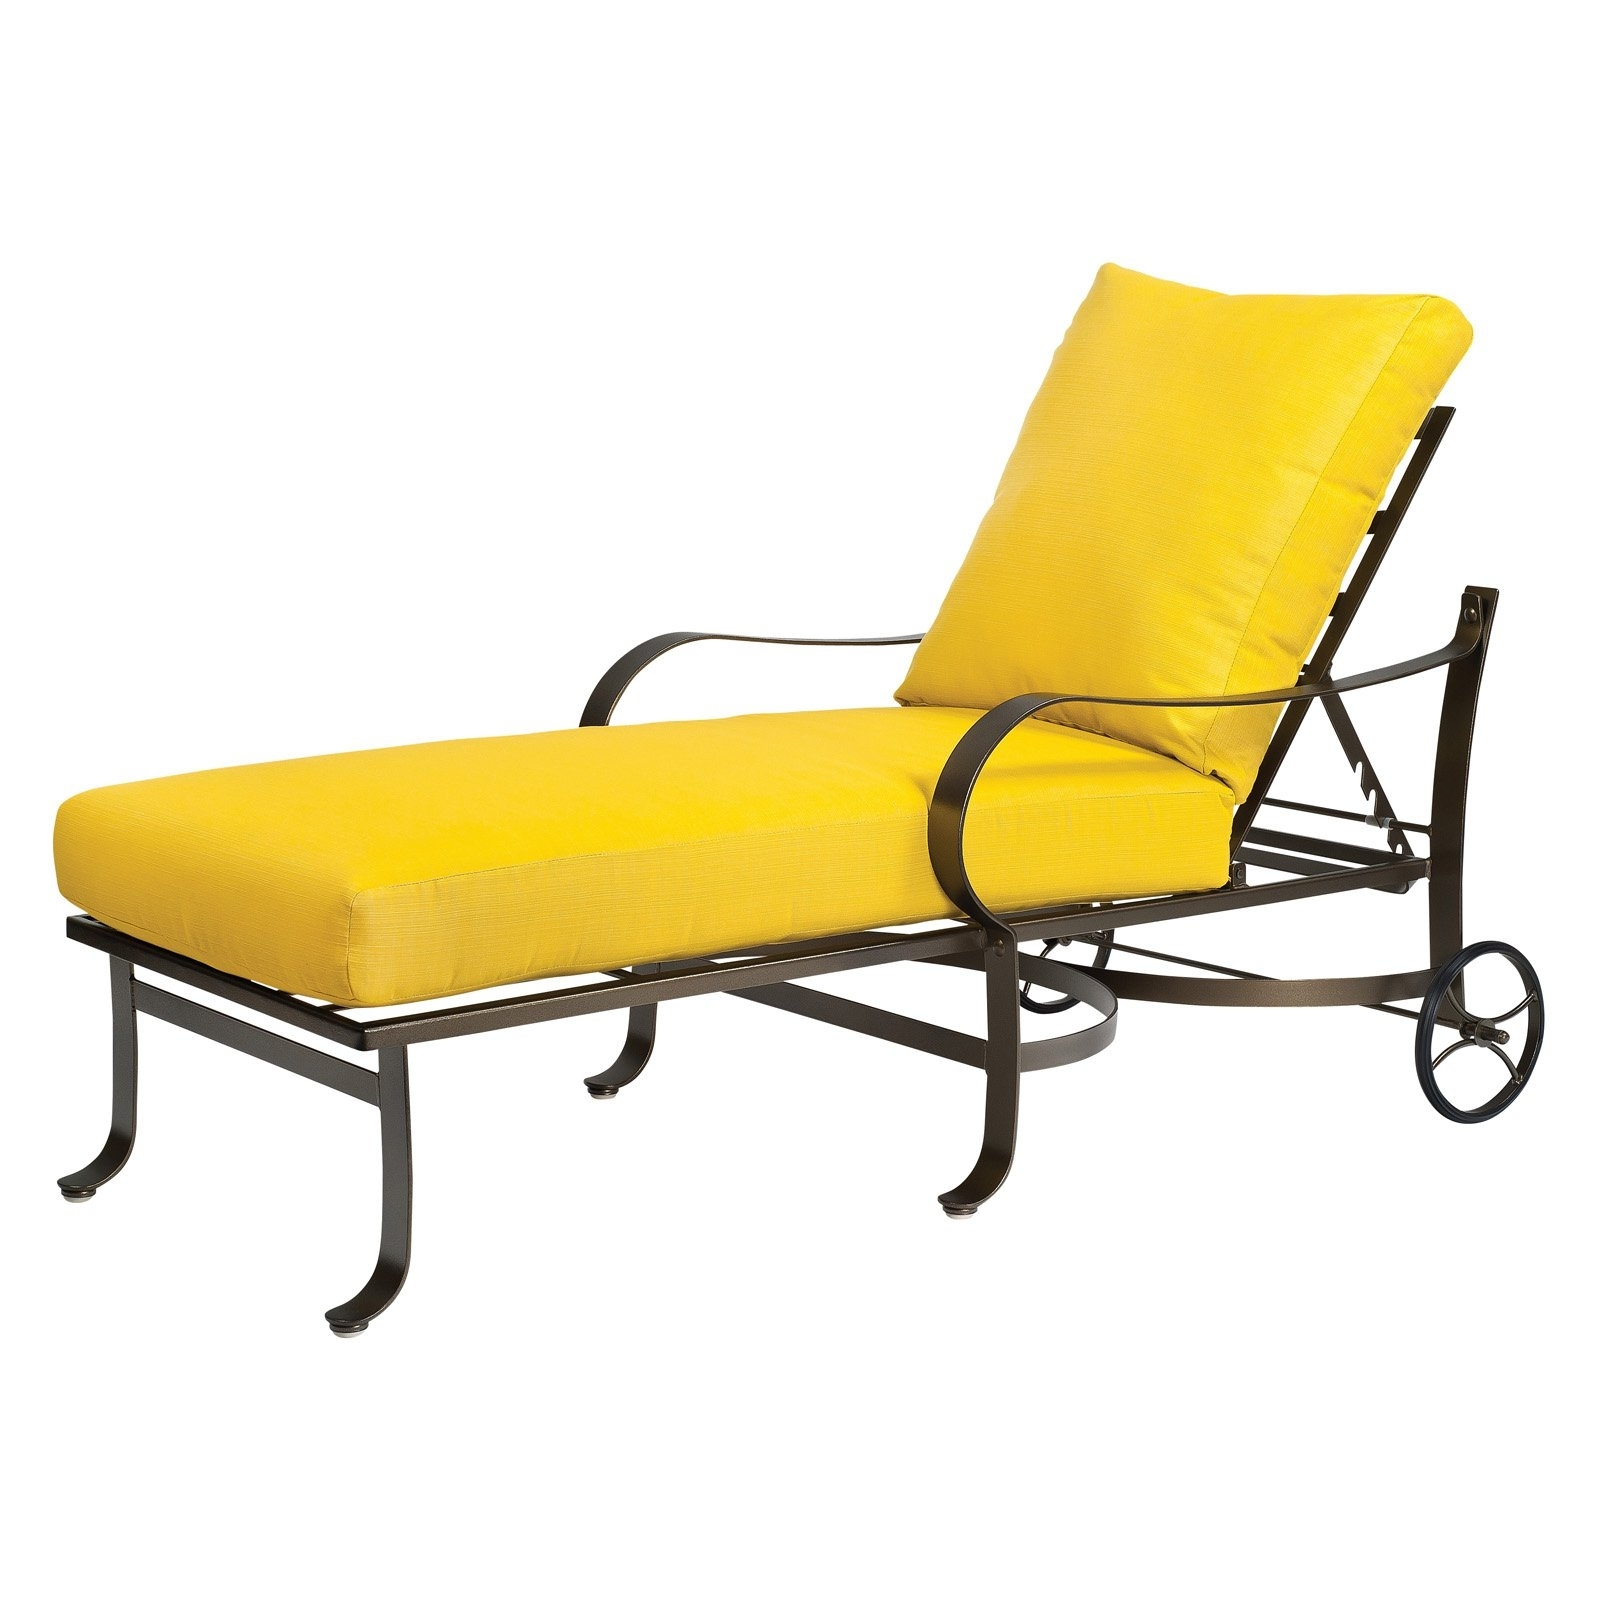 2017 Yellow Chaise Lounges Intended For Yellow Lounge Chair Cushions • Lounge Chairs Ideas (View 7 of 15)